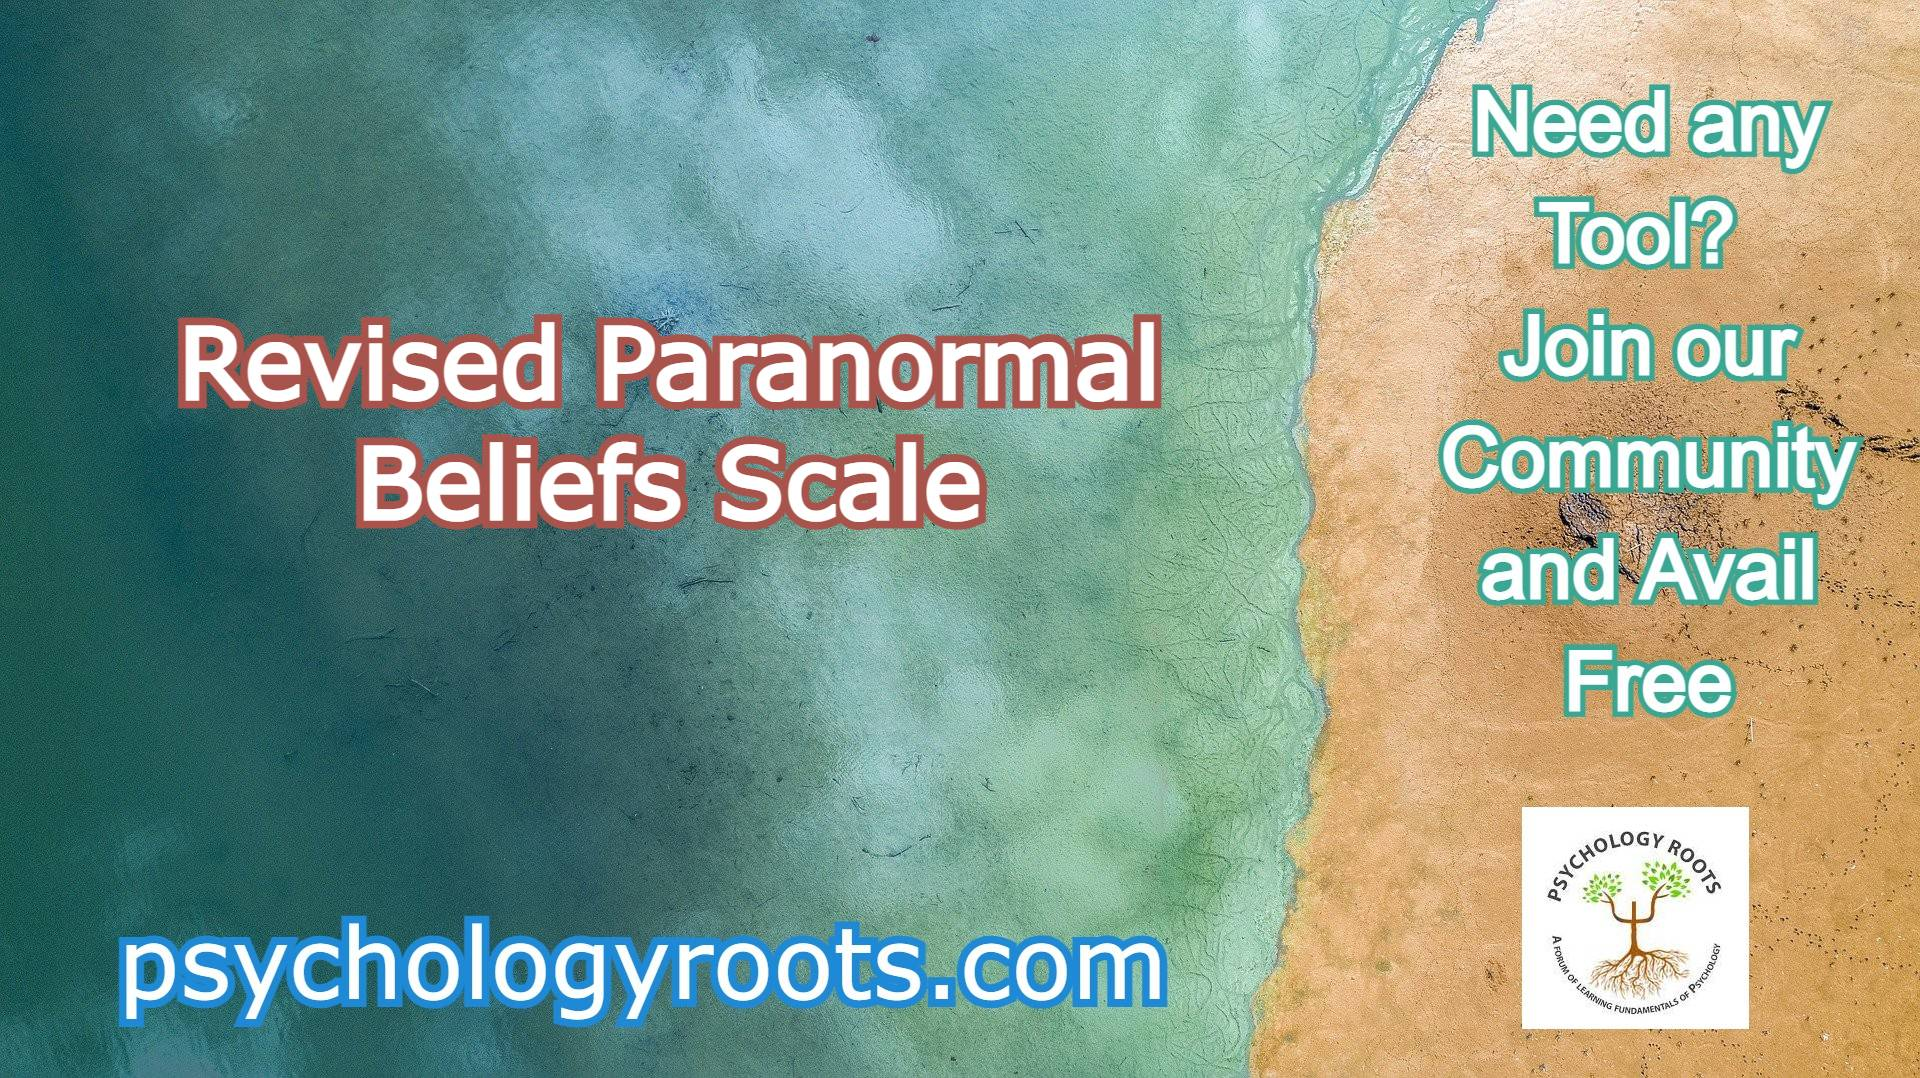 Revised Paranormal Beliefs Scale